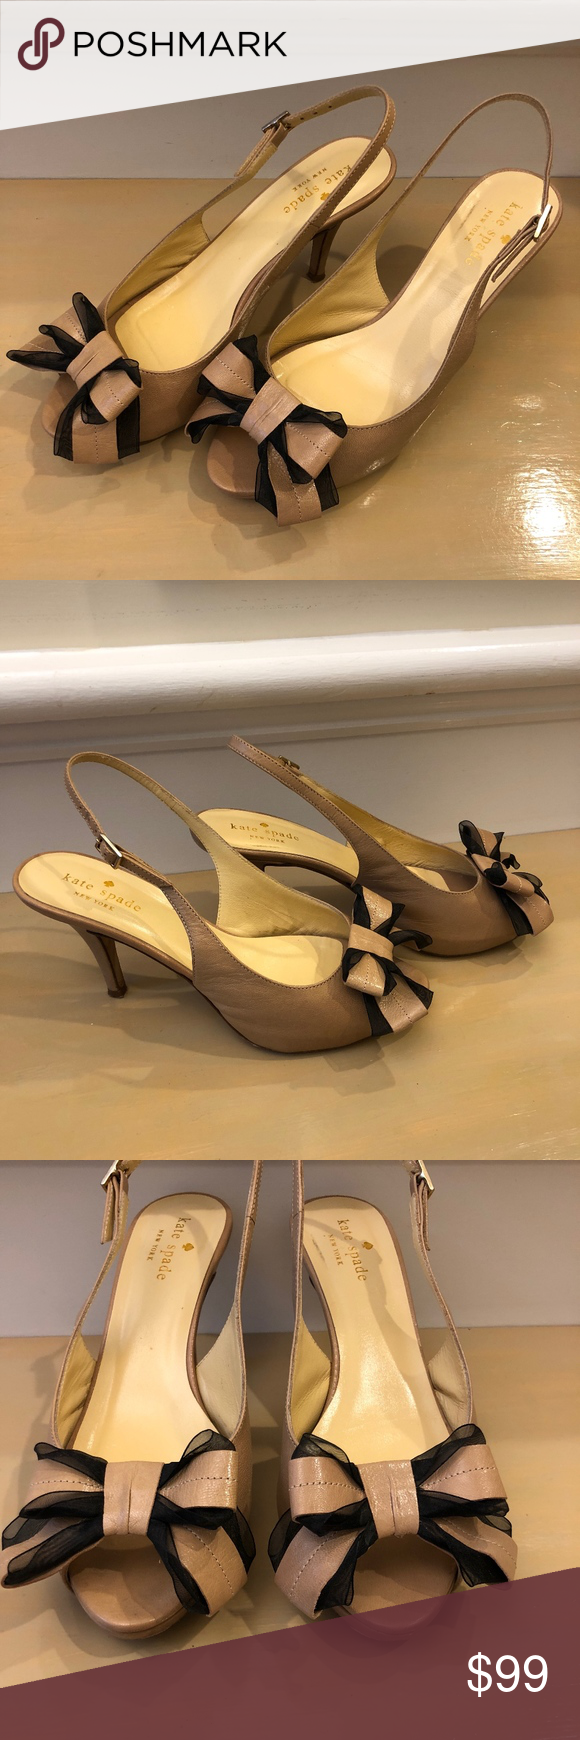 Kate Spade Tan Accent Bow Toe Kitten Heel Pumps 6b Kitten Heel Pumps Kitten Heels Heels